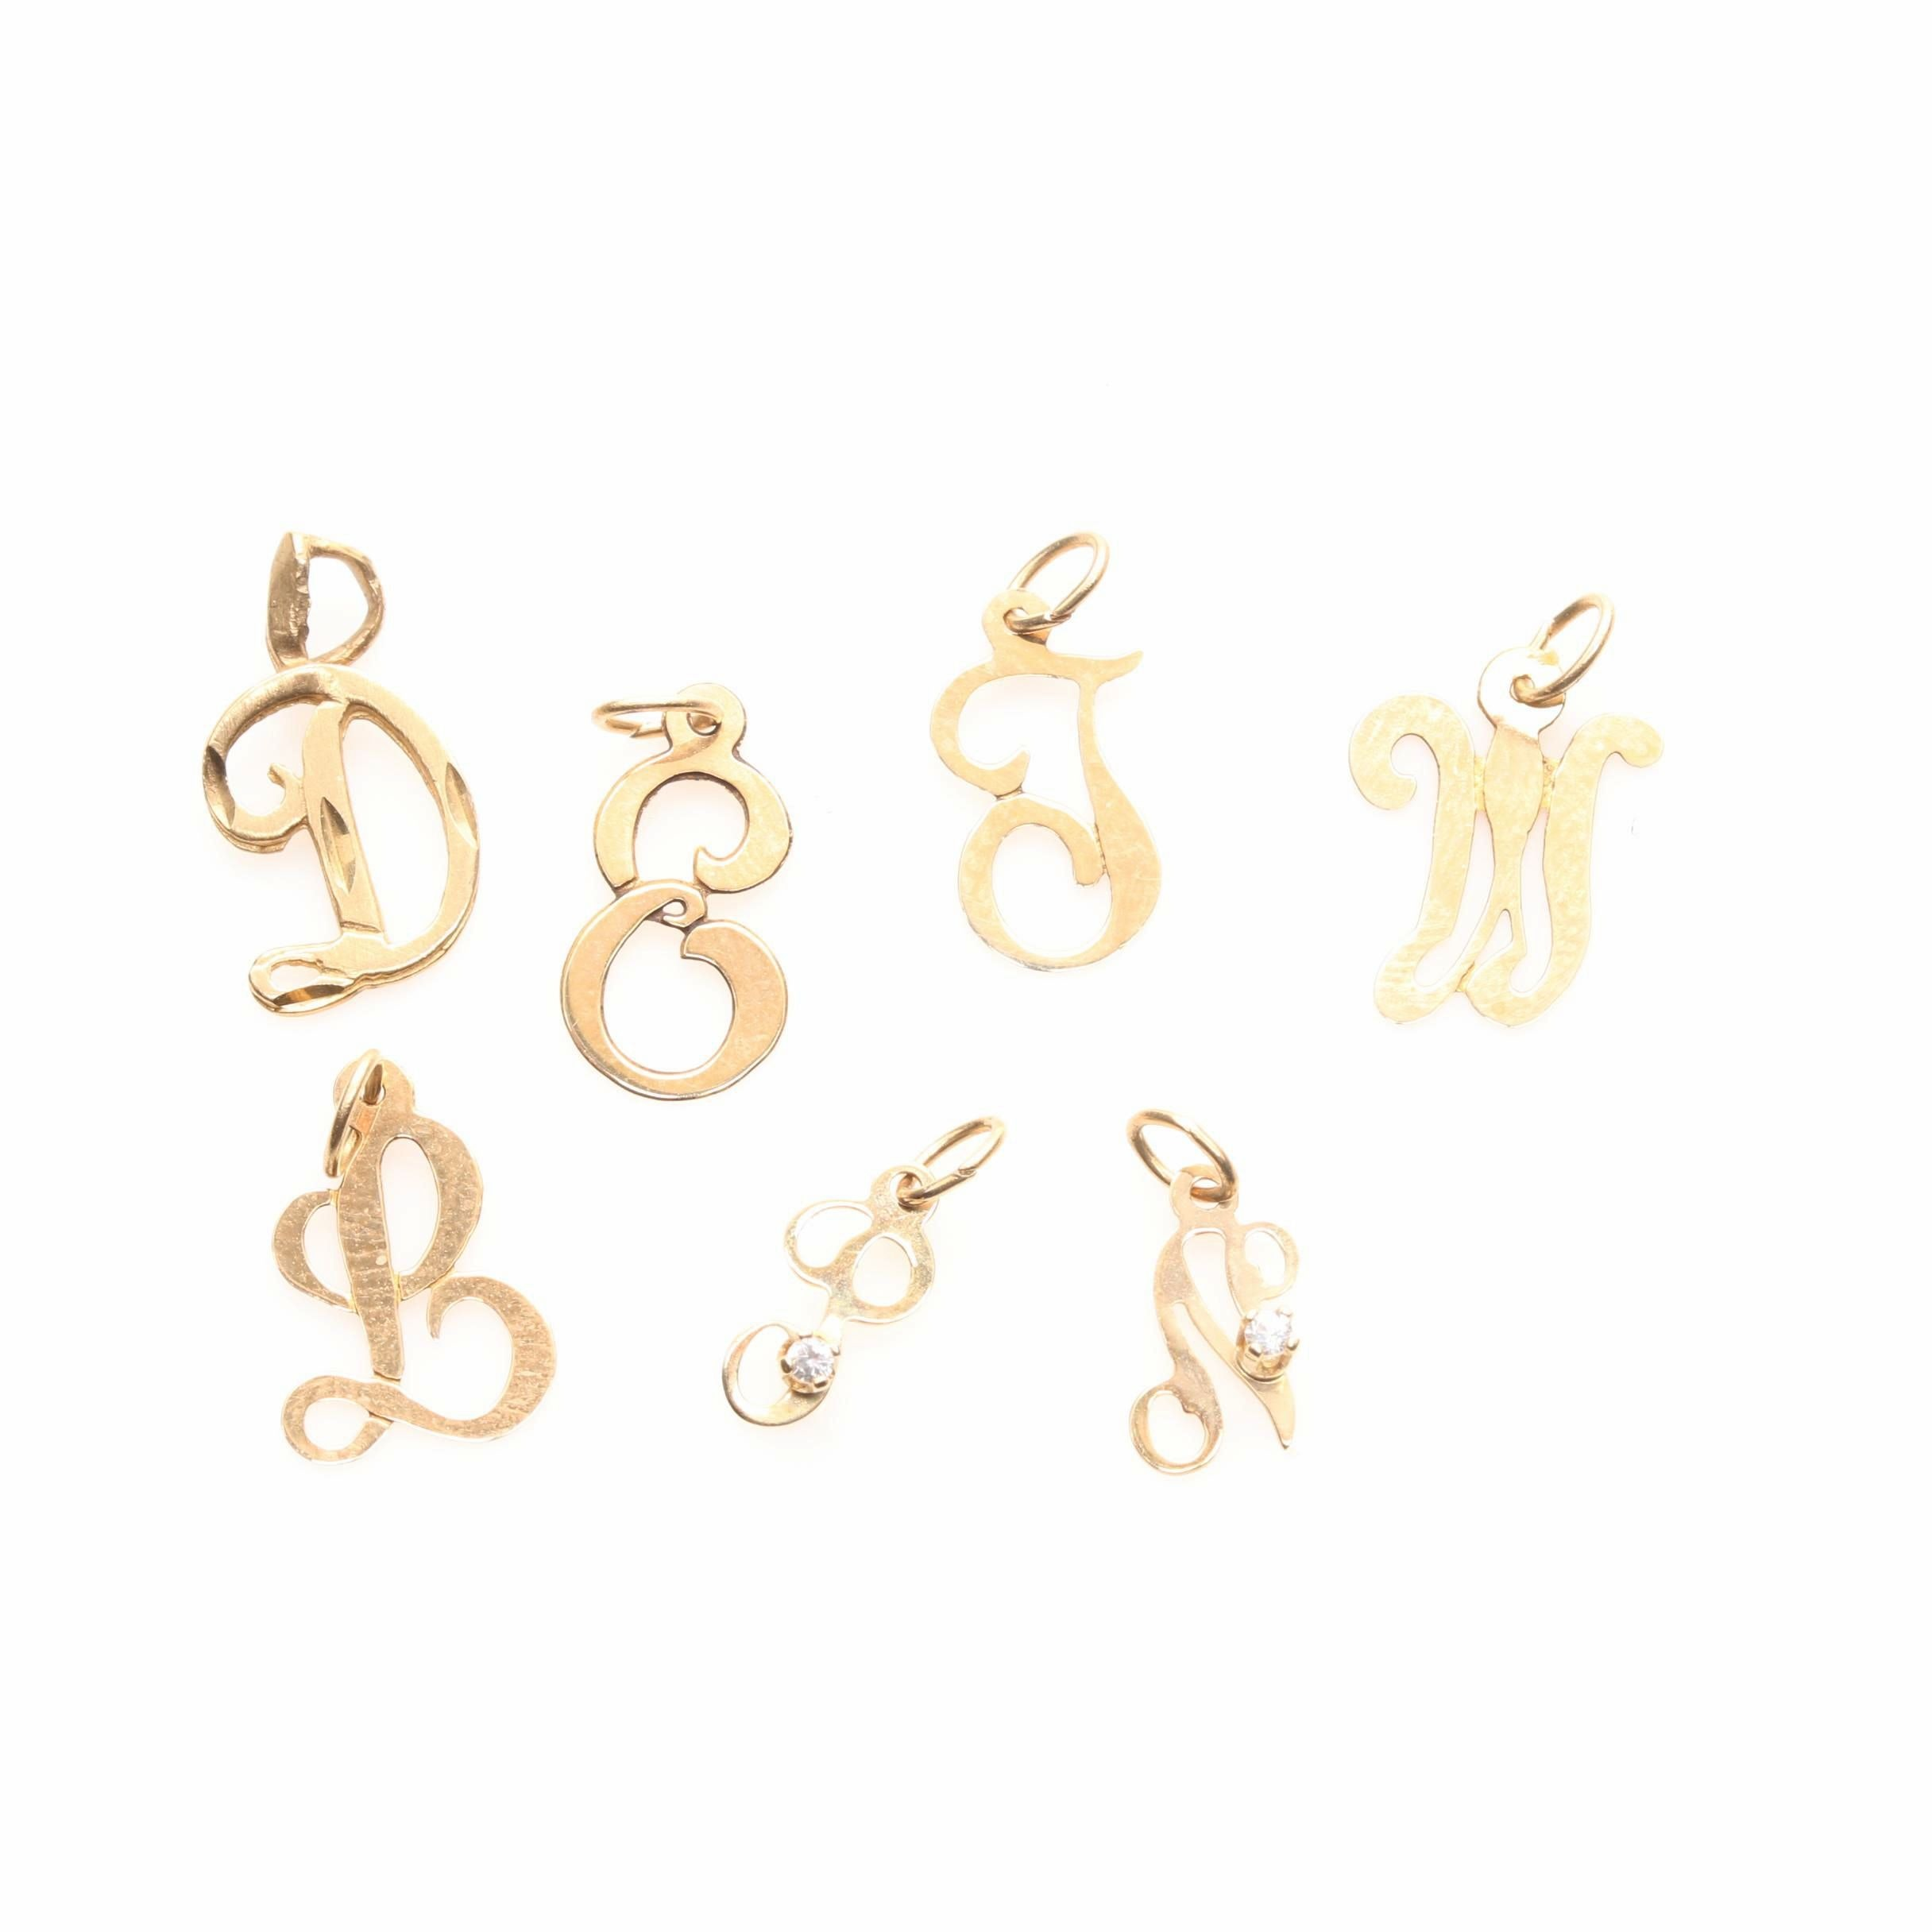 14K Yellow Gold Monogram Charms Including Cubic Zirconia and Michael Anthony